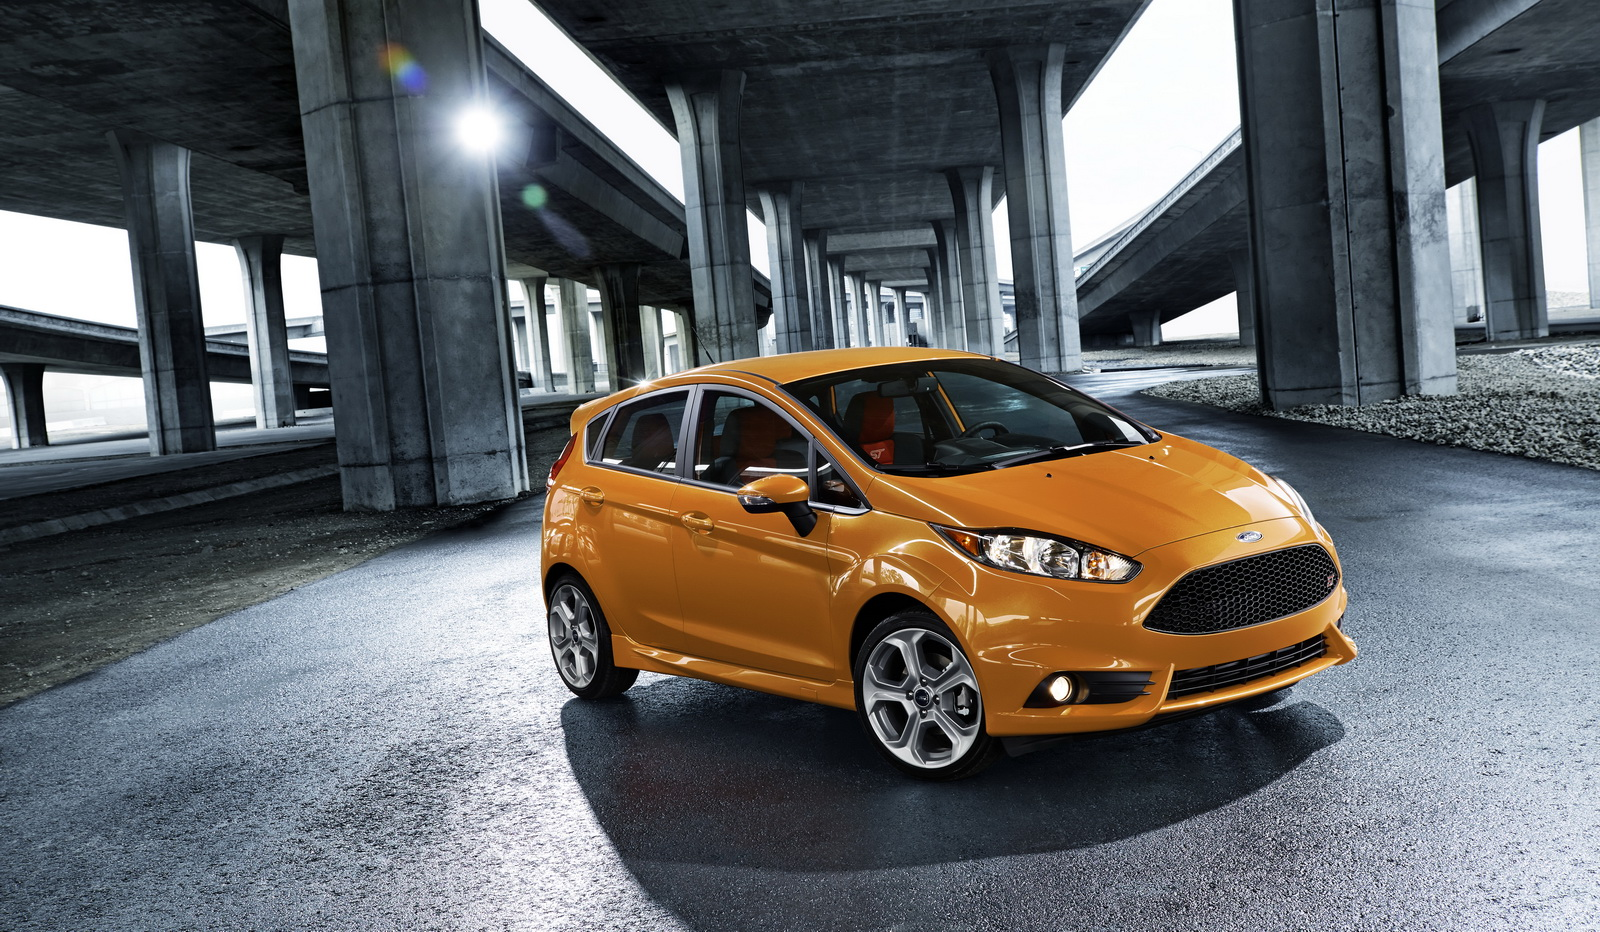 2017 ford fiesta st available now with new color free driver training carscoops. Black Bedroom Furniture Sets. Home Design Ideas